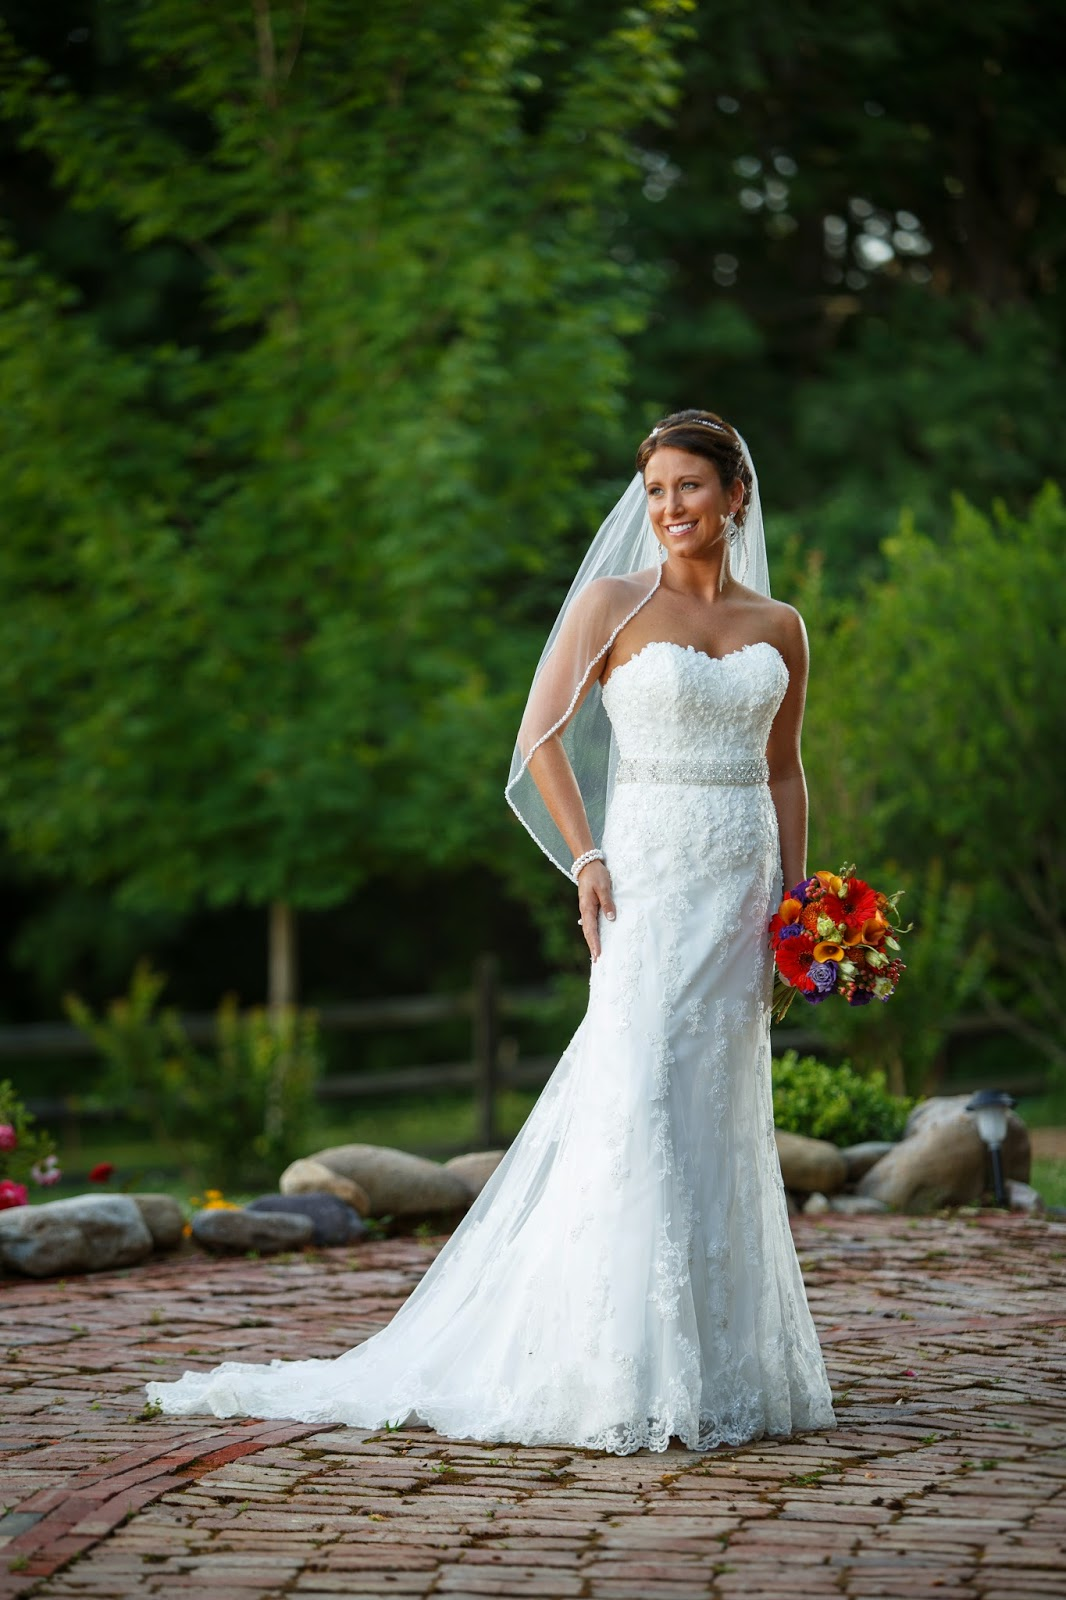 Cable Photography & Video: Amie Jarrett Briggs - Wedding Photography ...